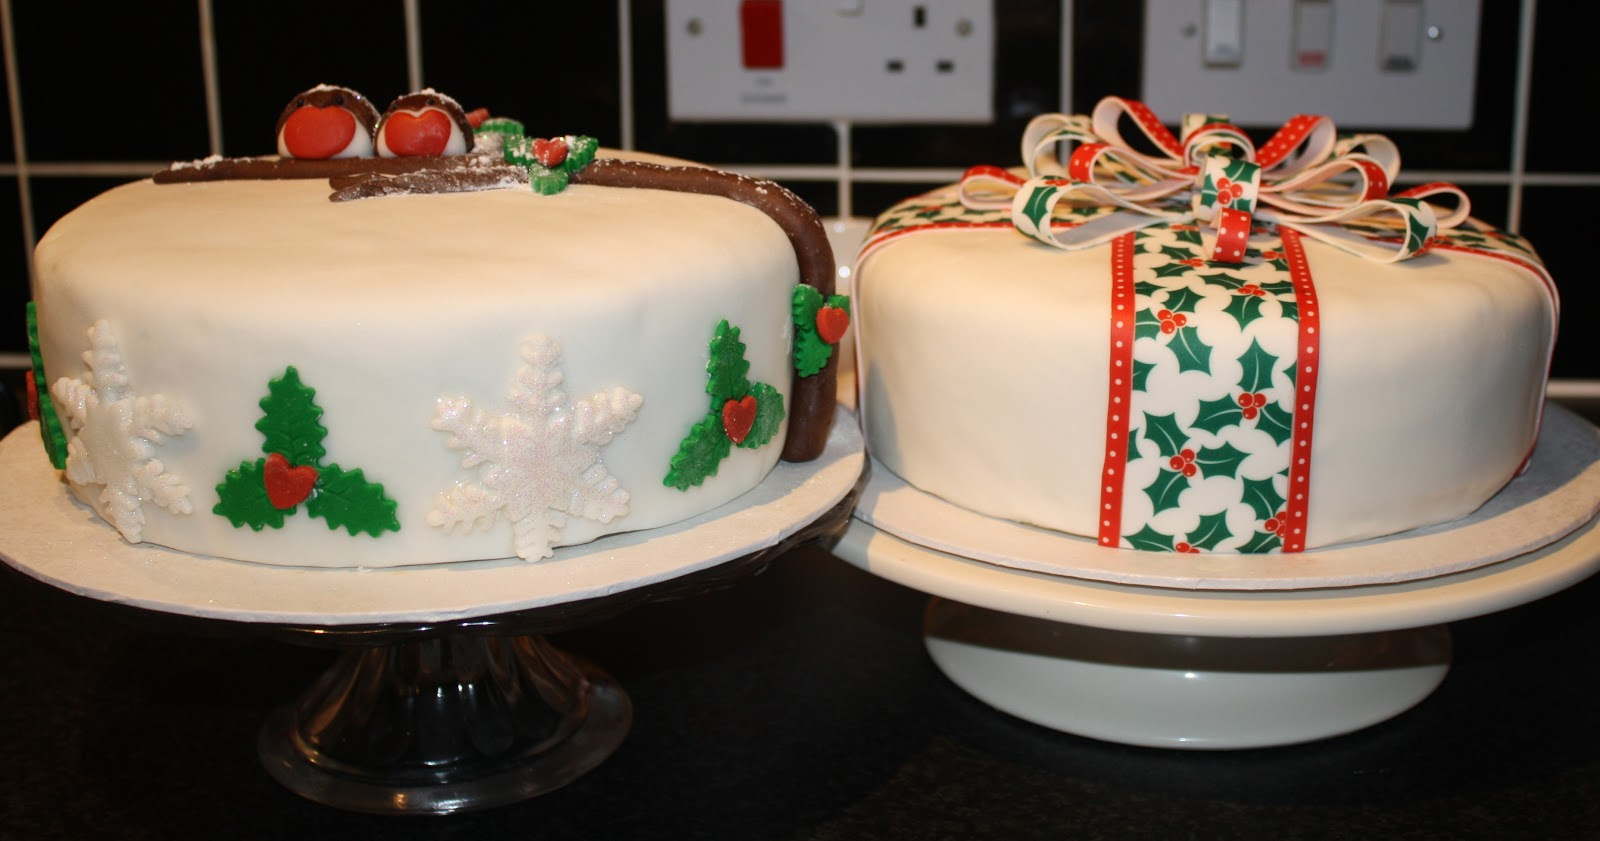 Decorating Christmas Cakes